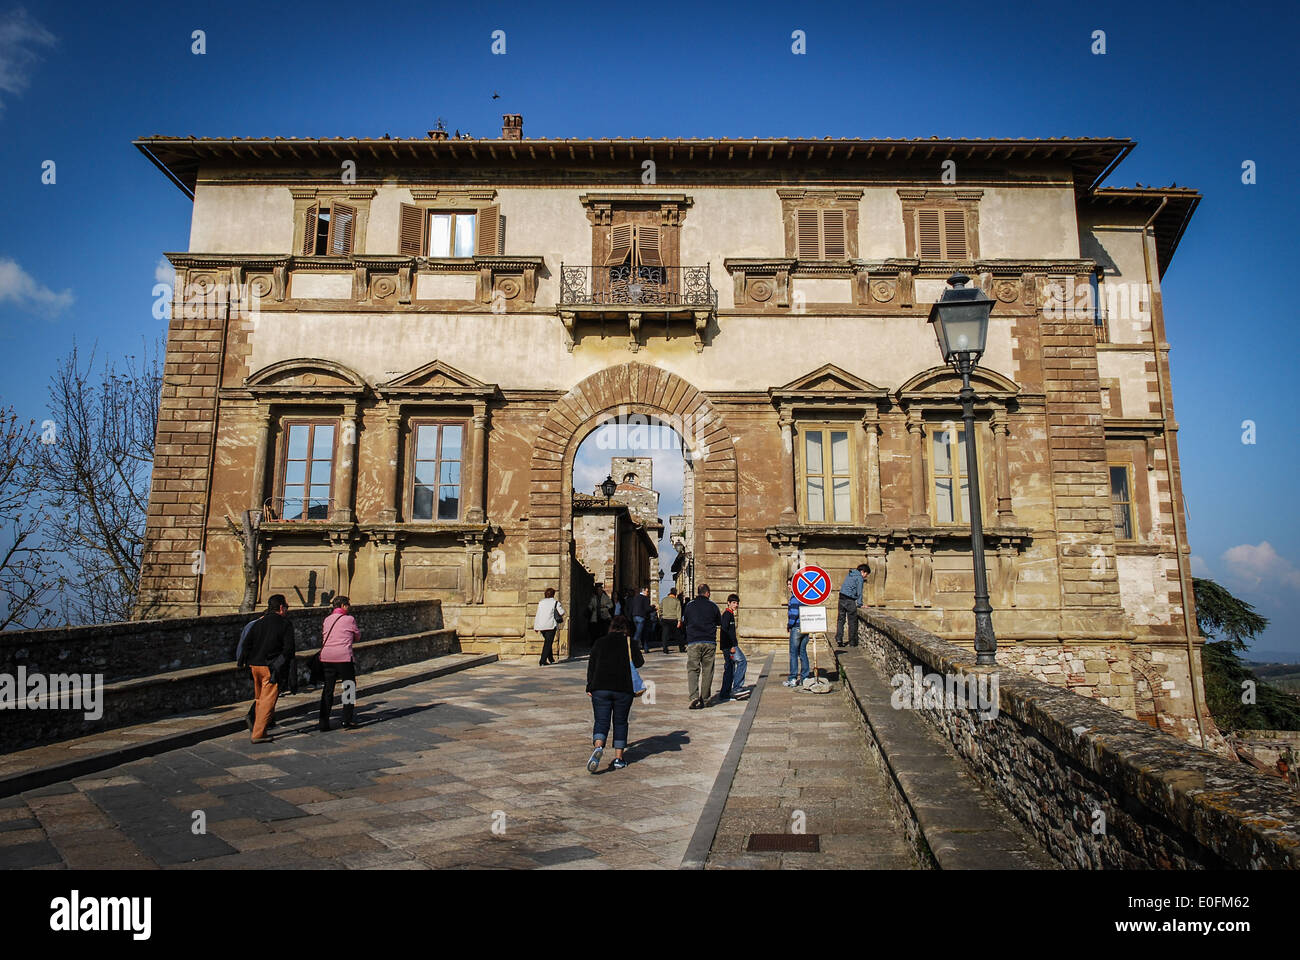 Colle Val d'Elsa, Tuscany, Italy - Stock Image